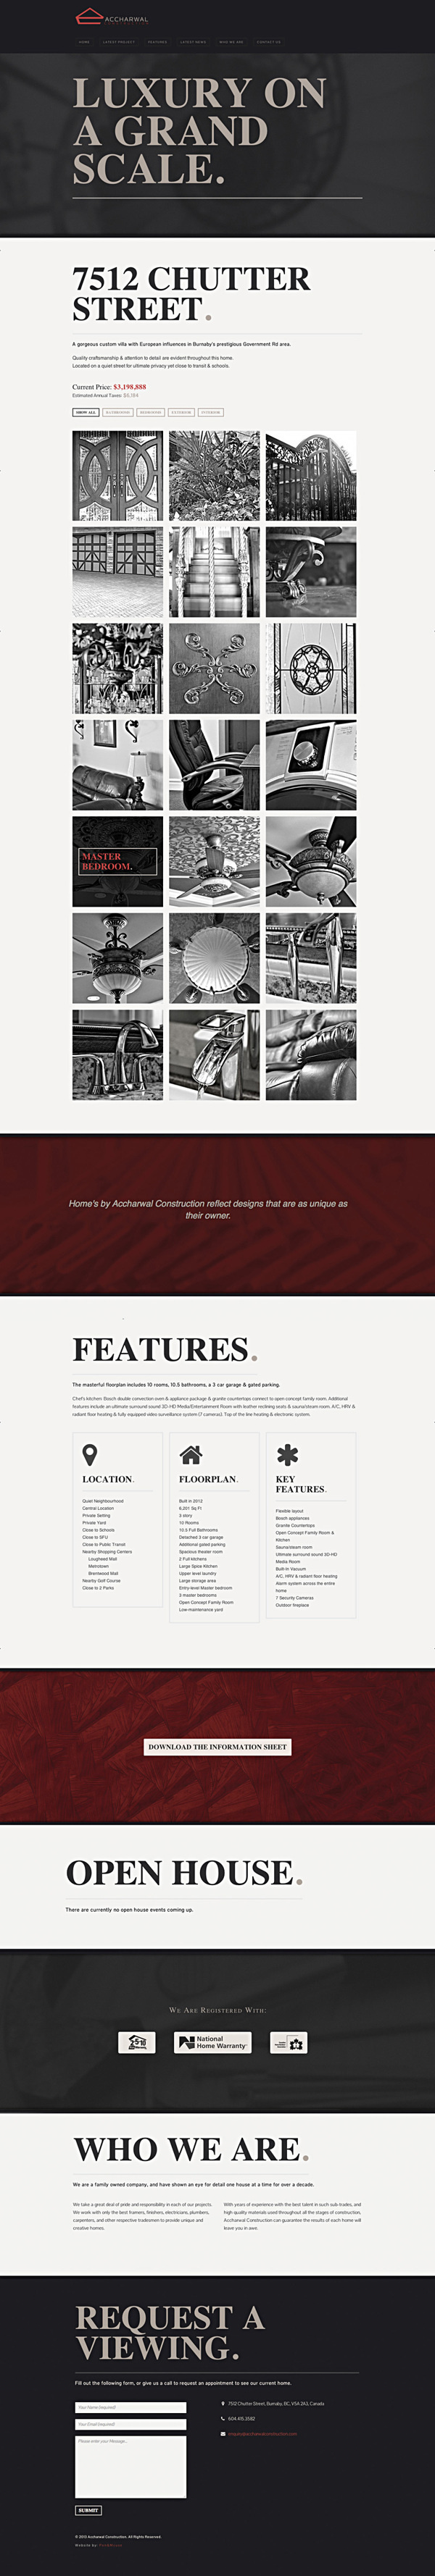 Accharwal Construction - One Page Website #interactive #page #construction #one #responsive #design #header #home #website #large #real #parallax #single #estate #typography